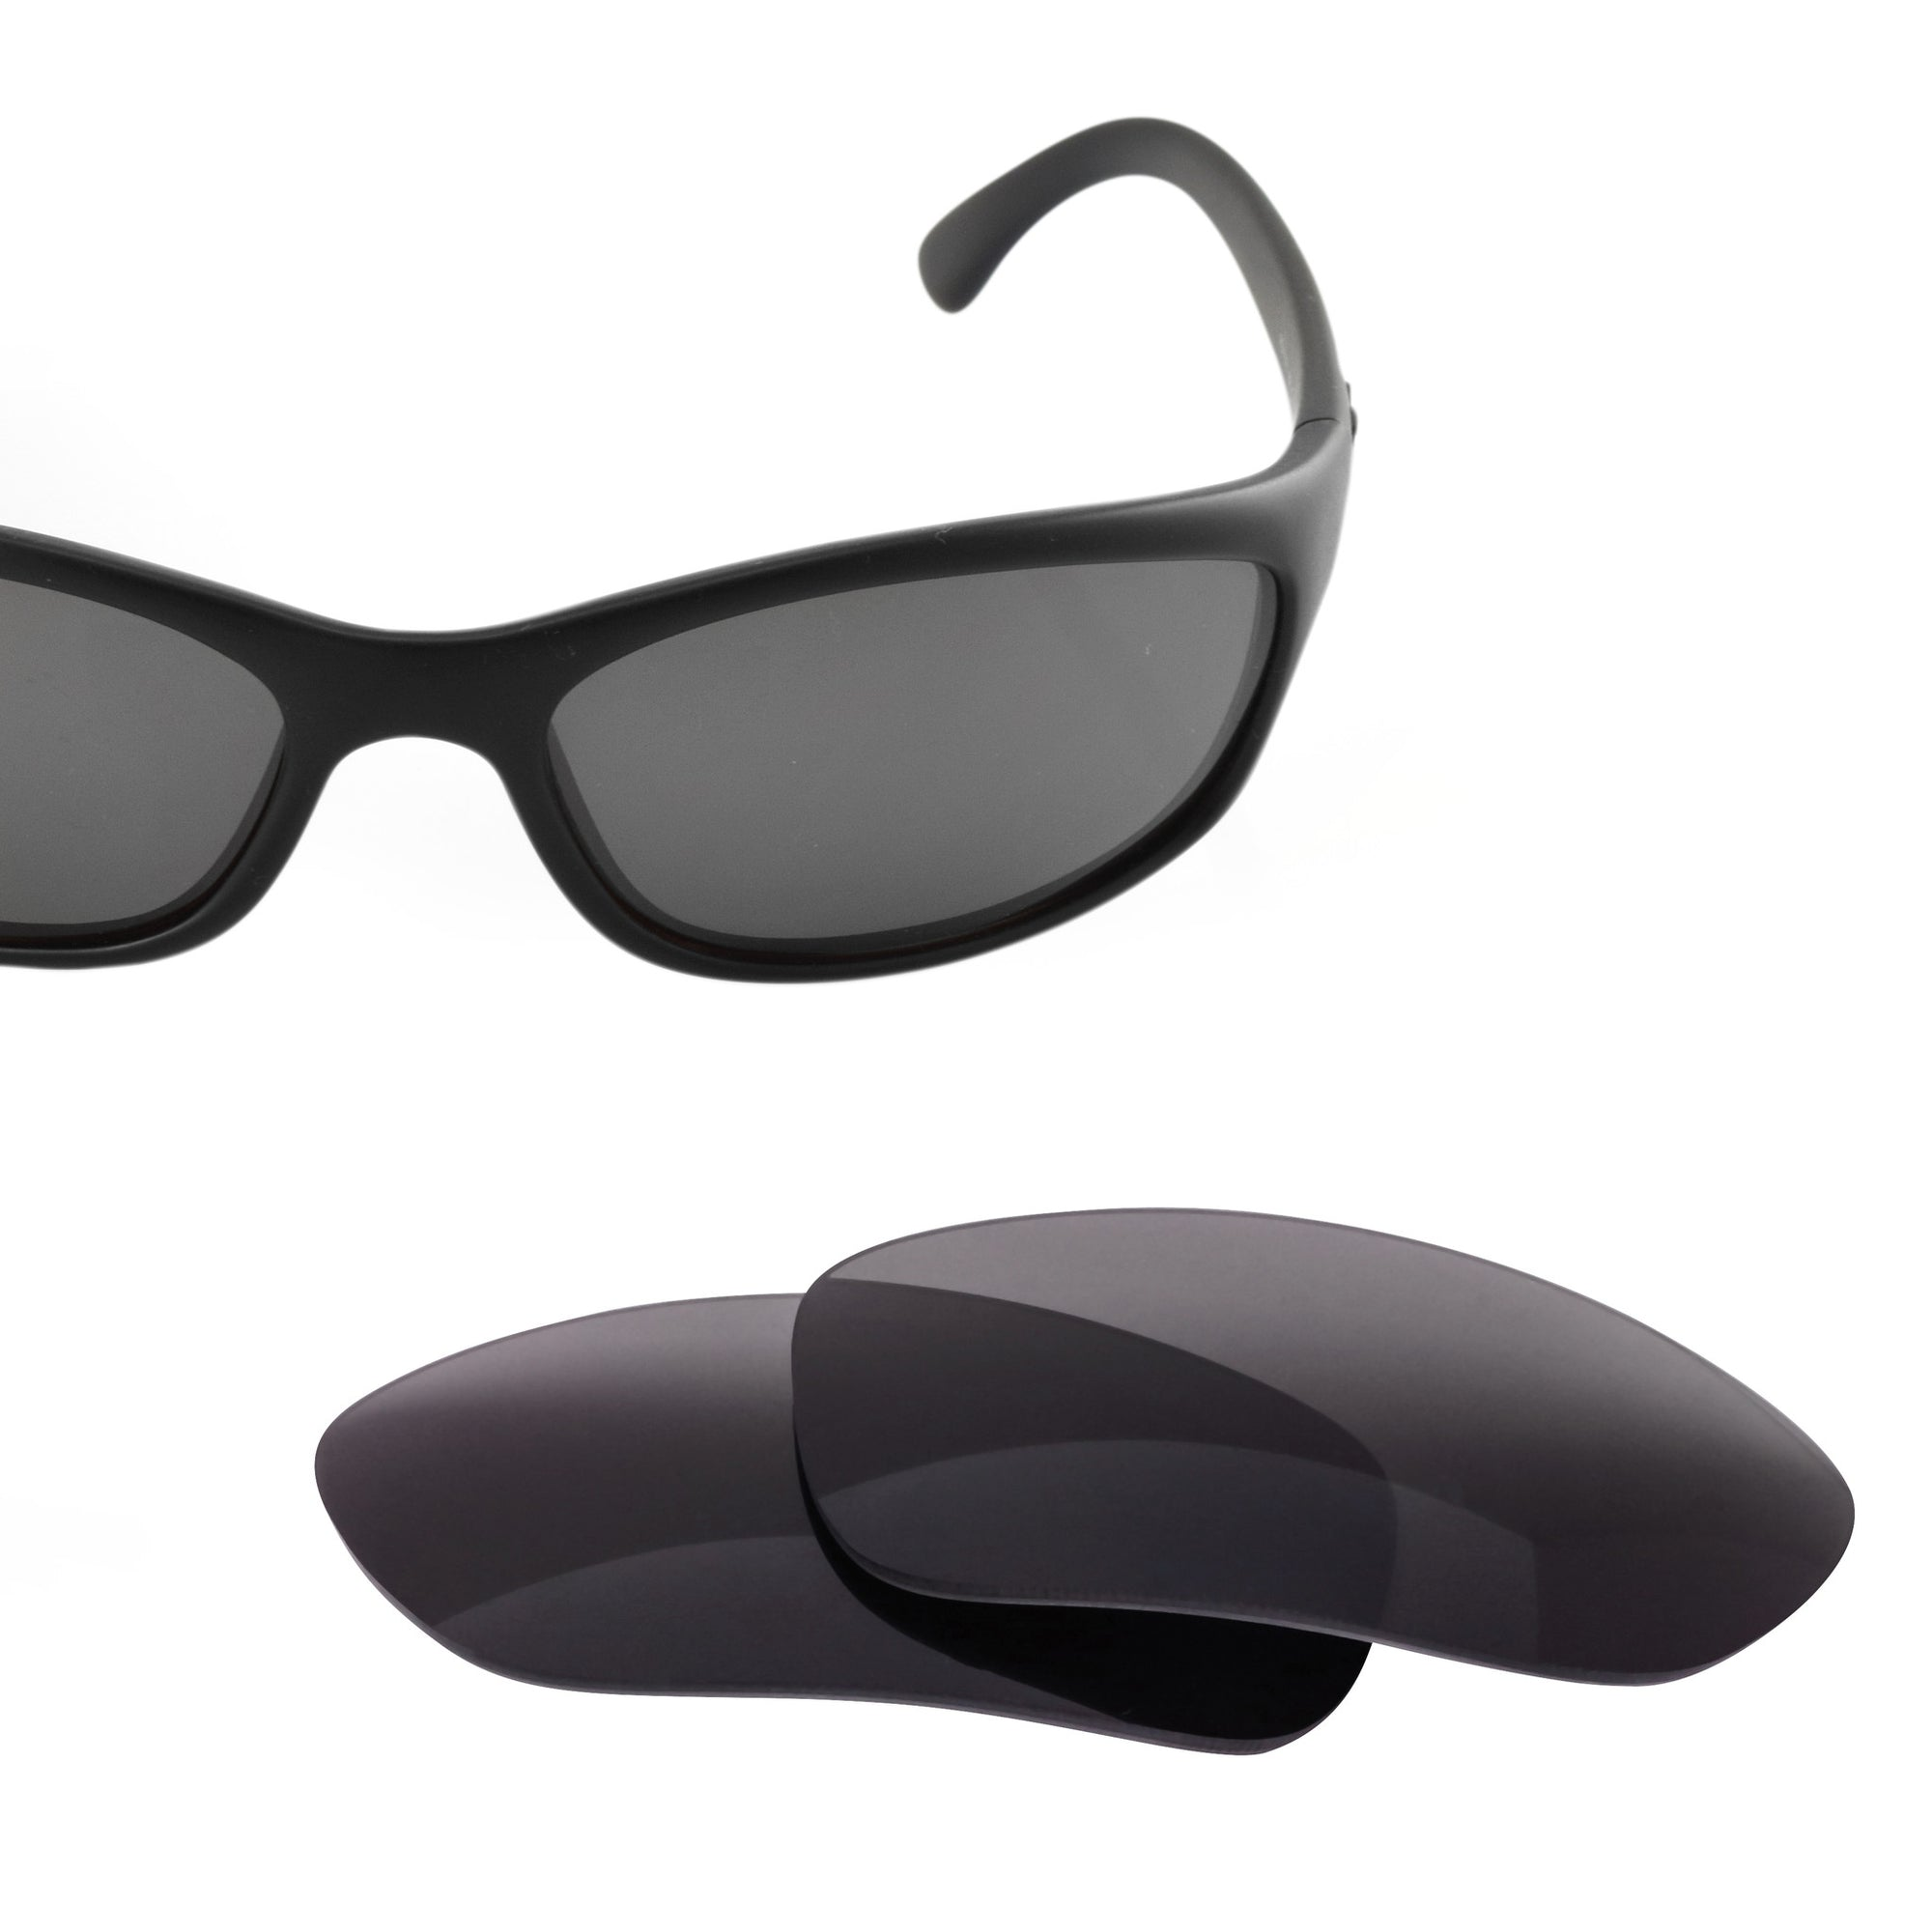 81159fac75 Ray Ban Fast and Furious RB4115 Lens Replacement - LenzFlip